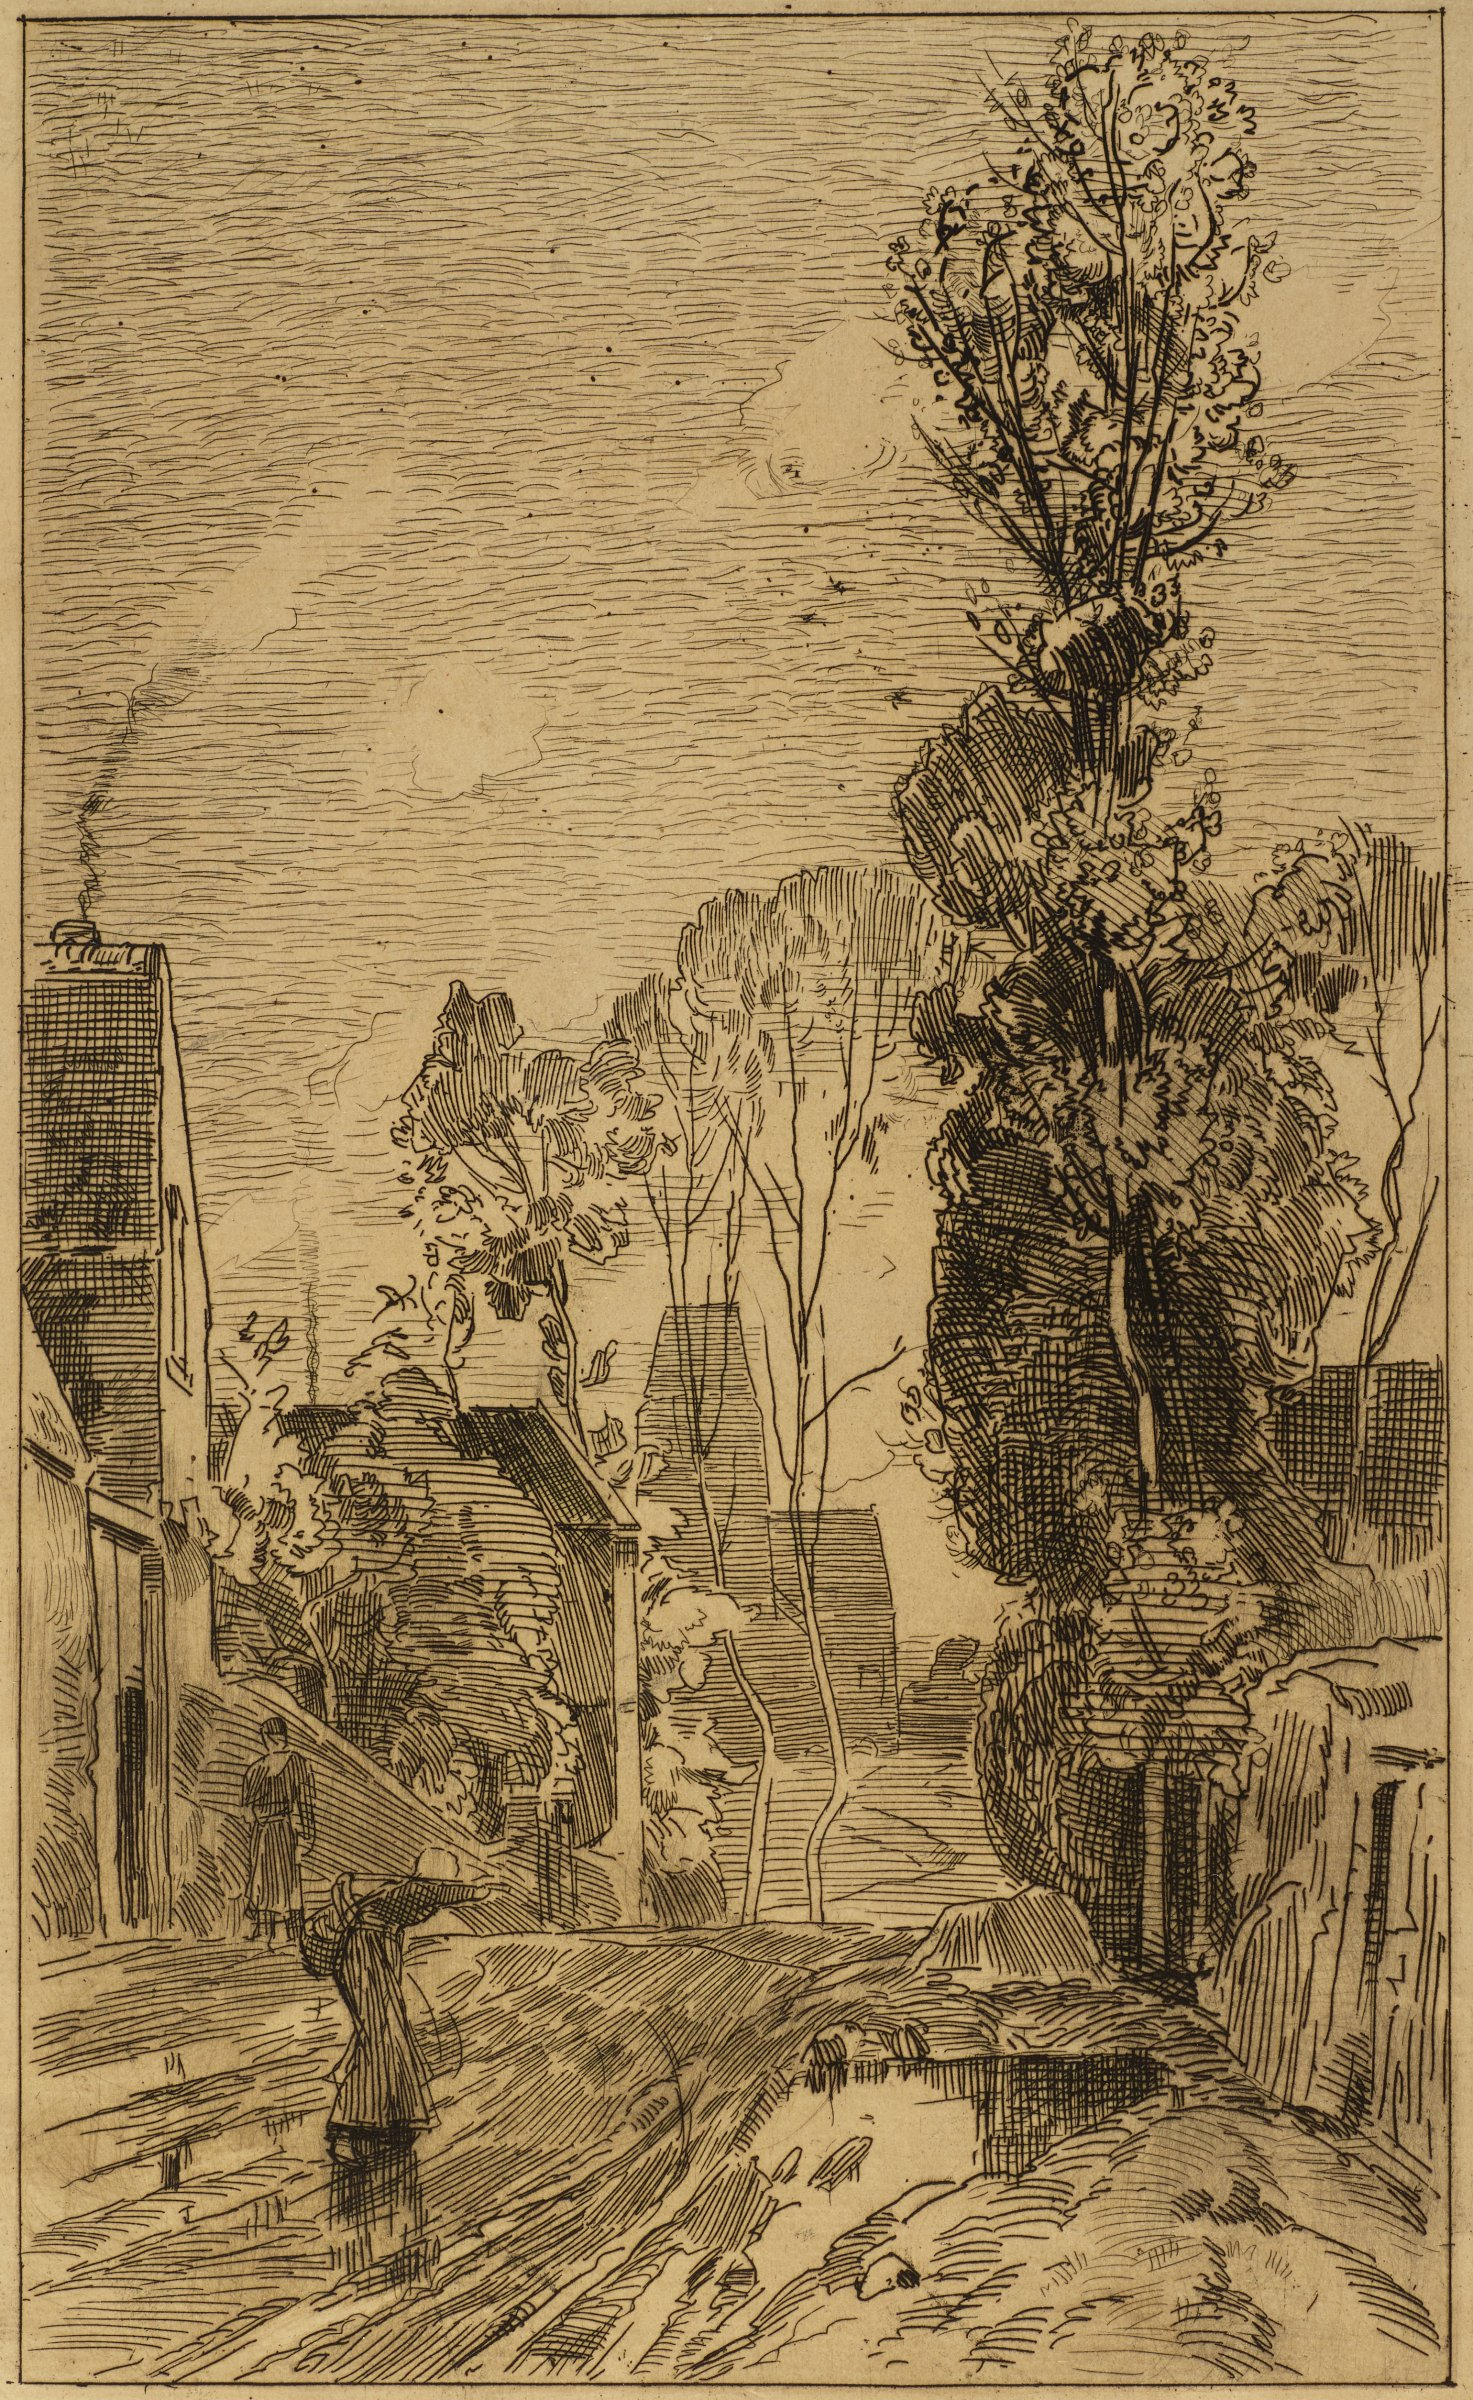 Scene of a quiet city street is shown. A woman walks away from the viewer as she carries a heavy load on her back. A man stands at a nearby doorway looking out onto the street. A tall tree stands on the right side of the street.